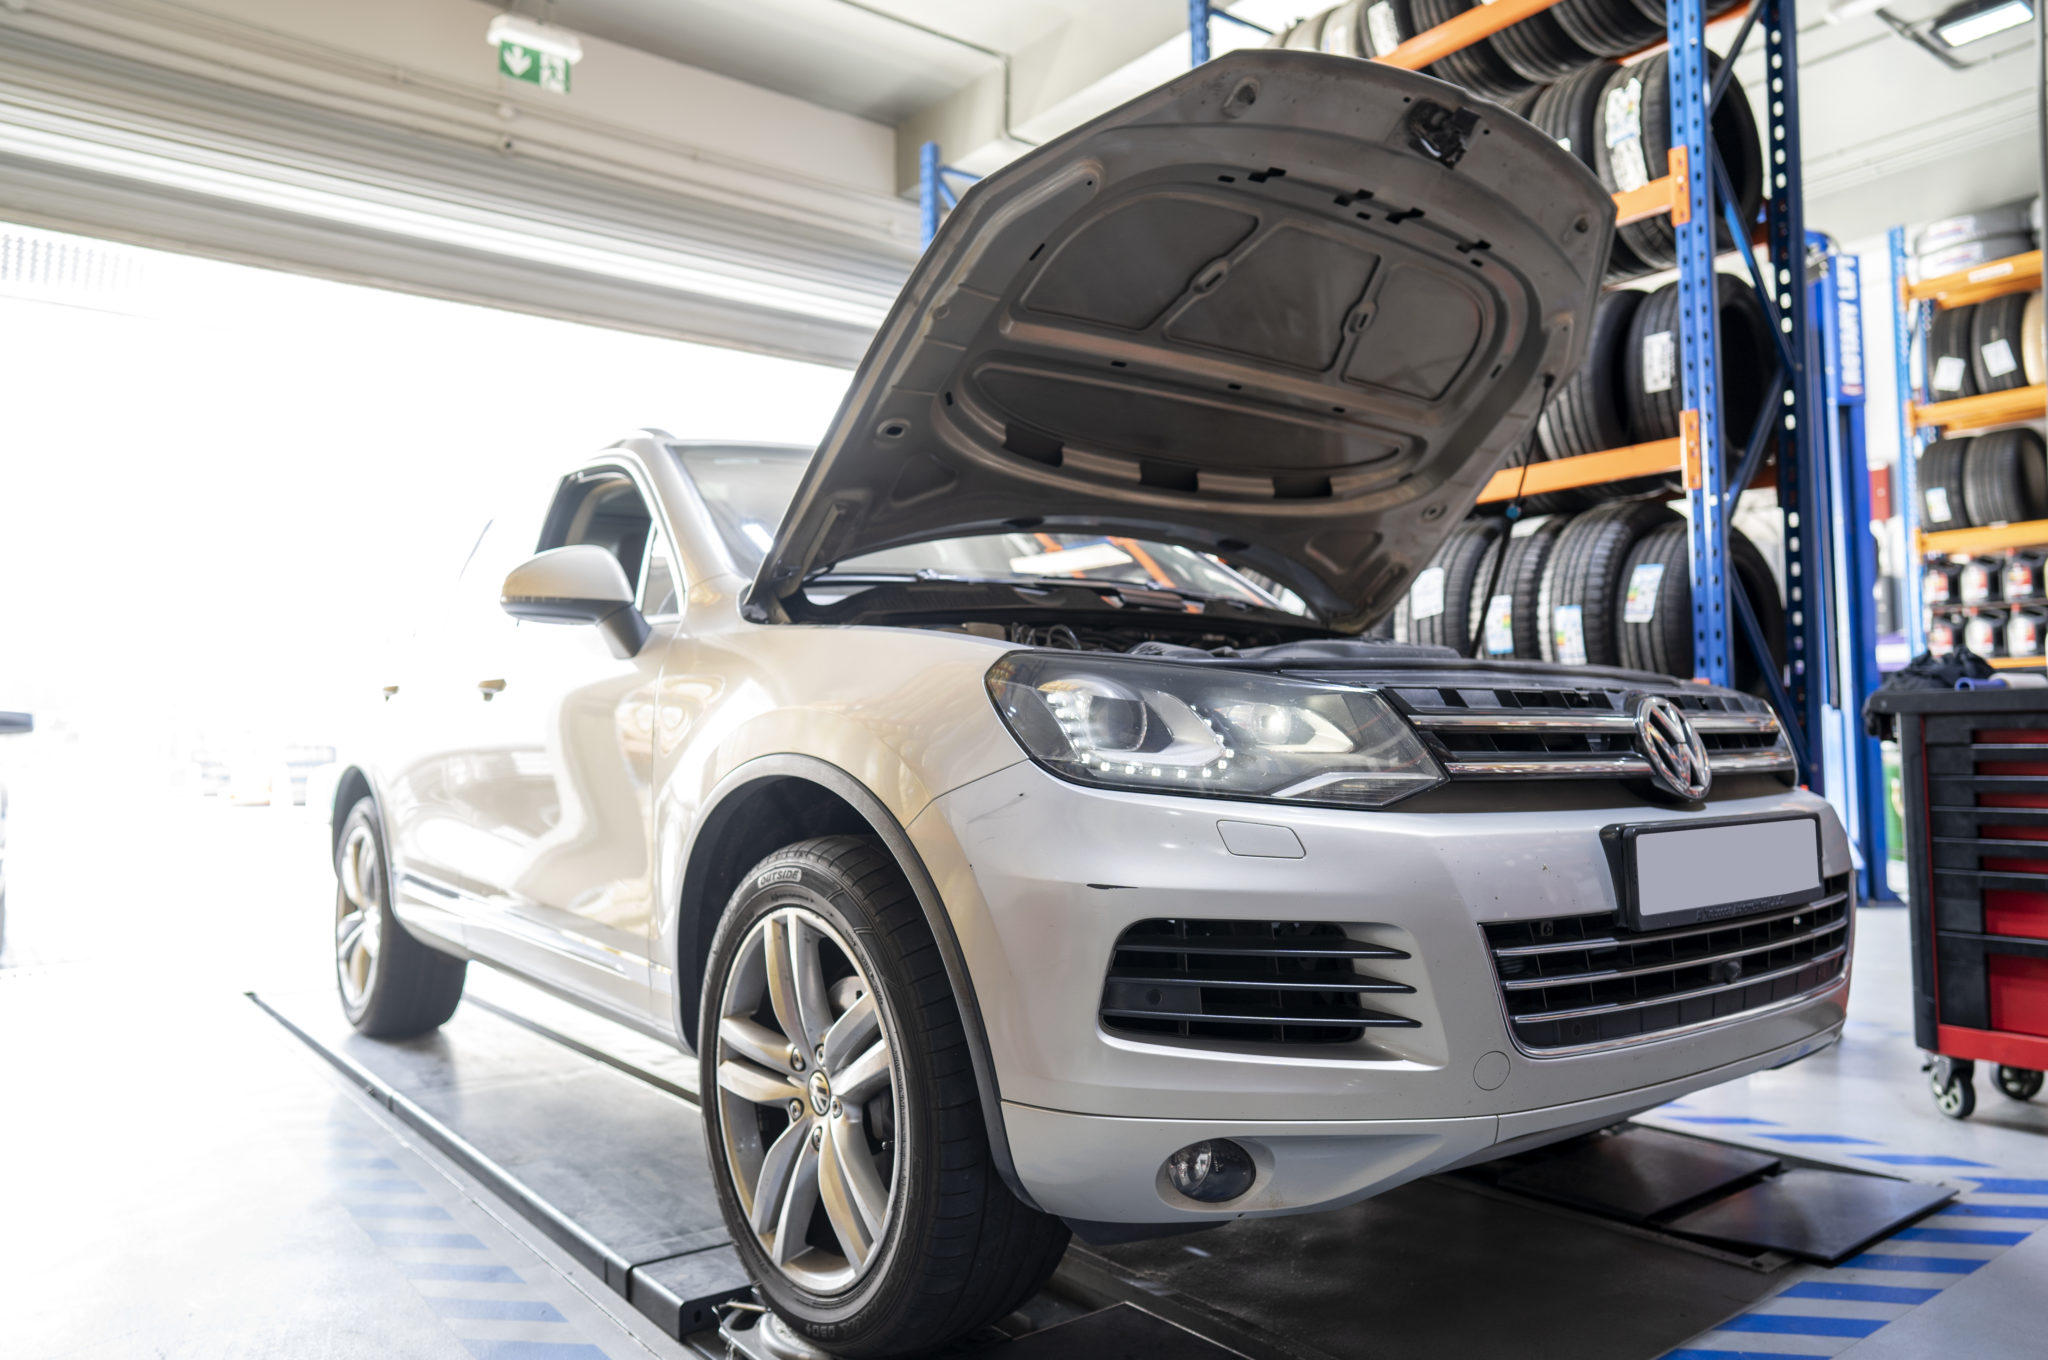 Car Detailing Services in Dubai